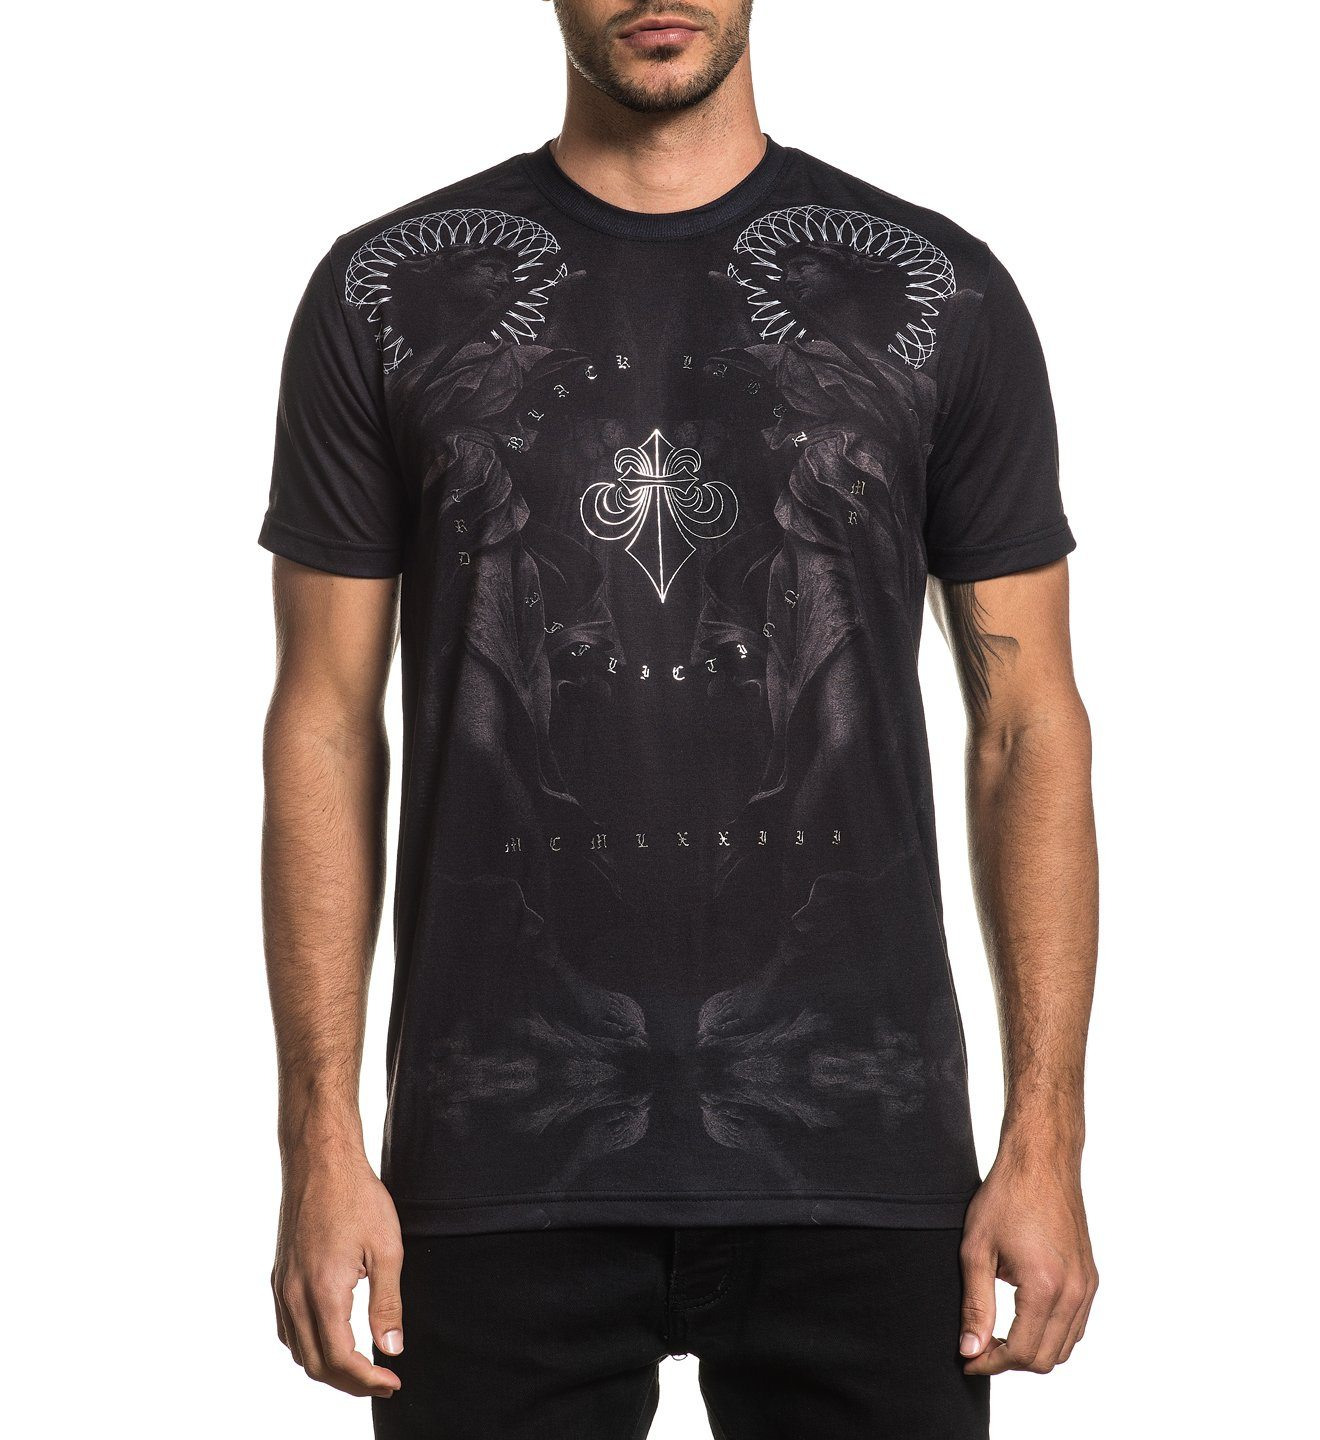 Mens Short Sleeve Tees - Angel